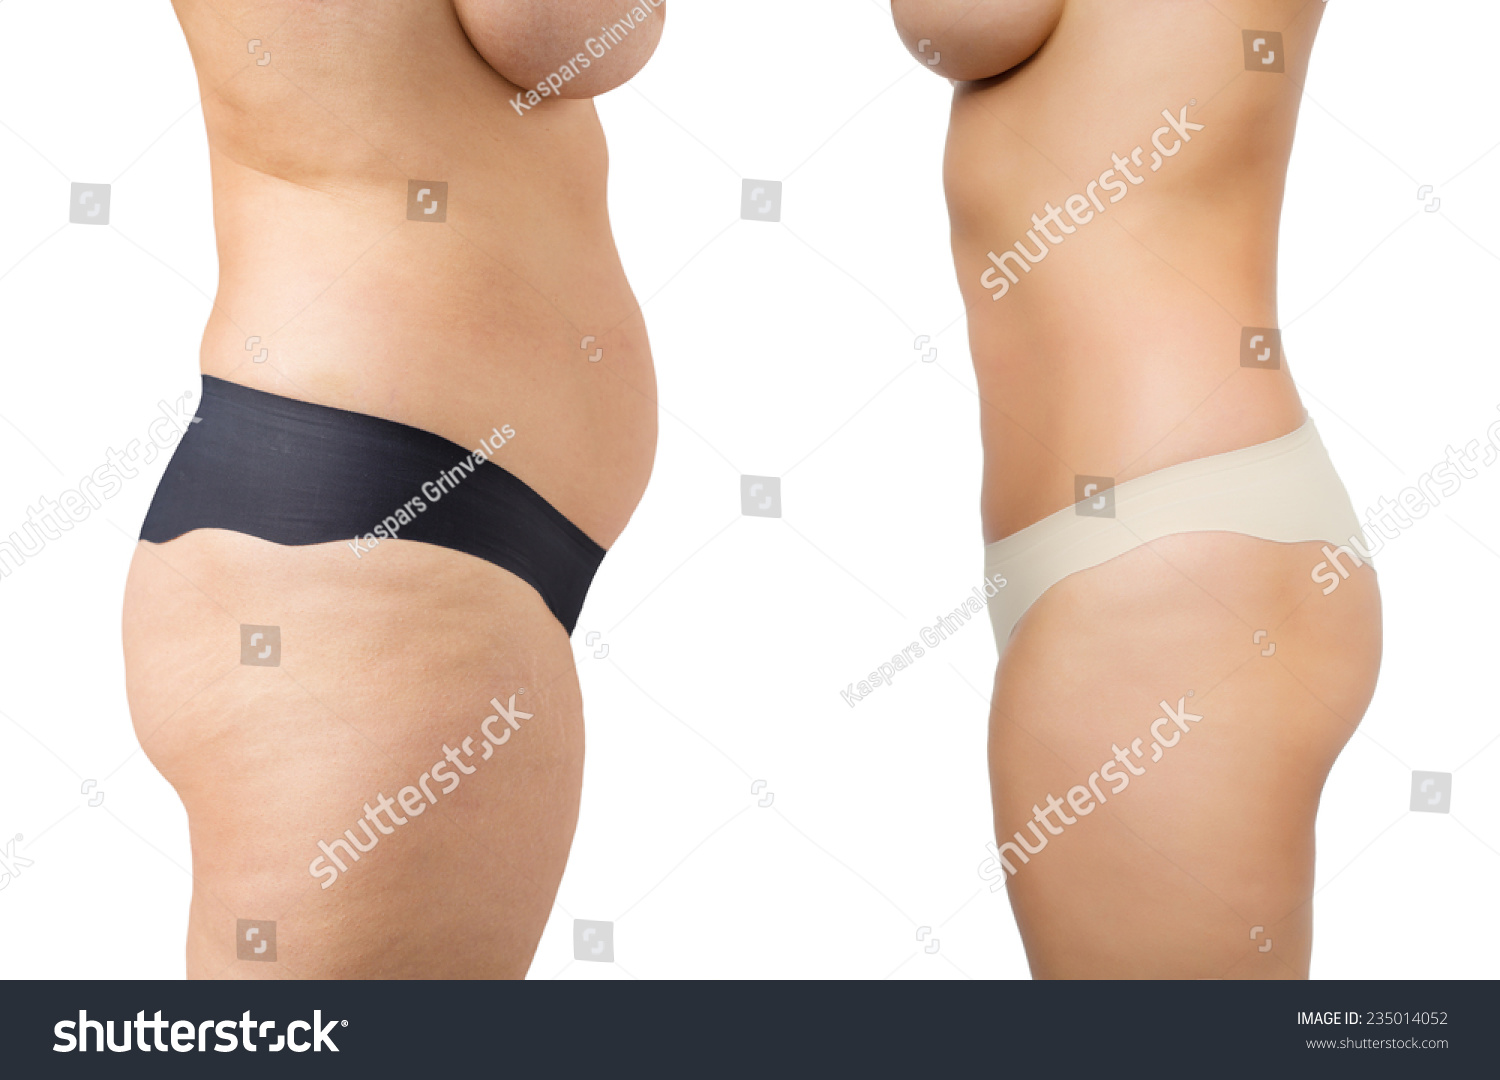 Before And After Weight Loss Stock Photo 235014052 ...